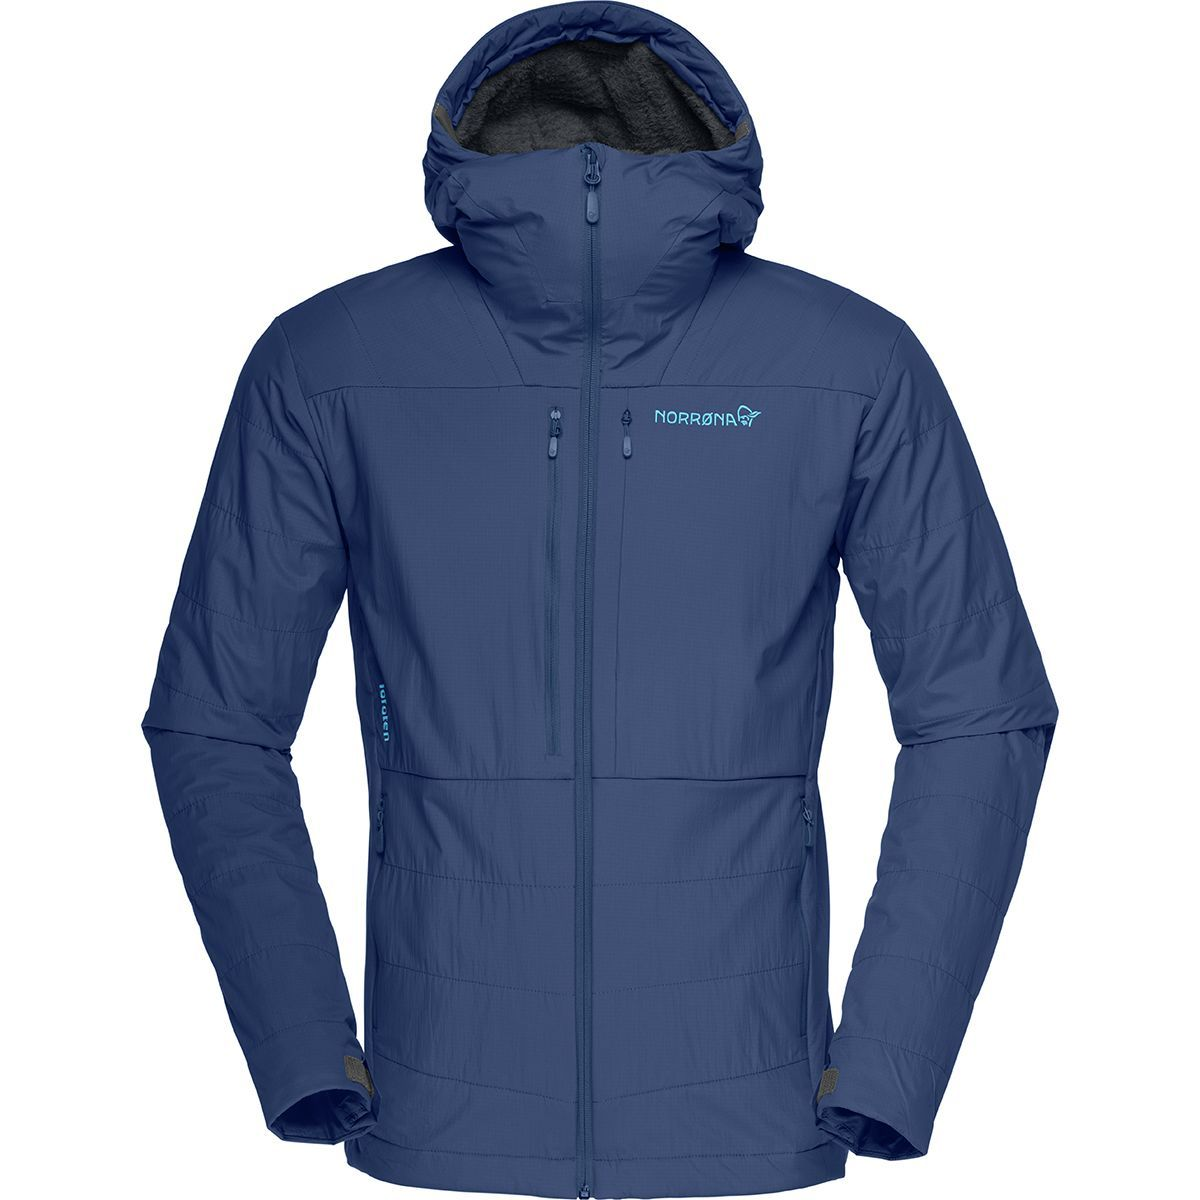 Norrona Lofoten Powershield Pro Alpha Jacket - Men's ocean sweel